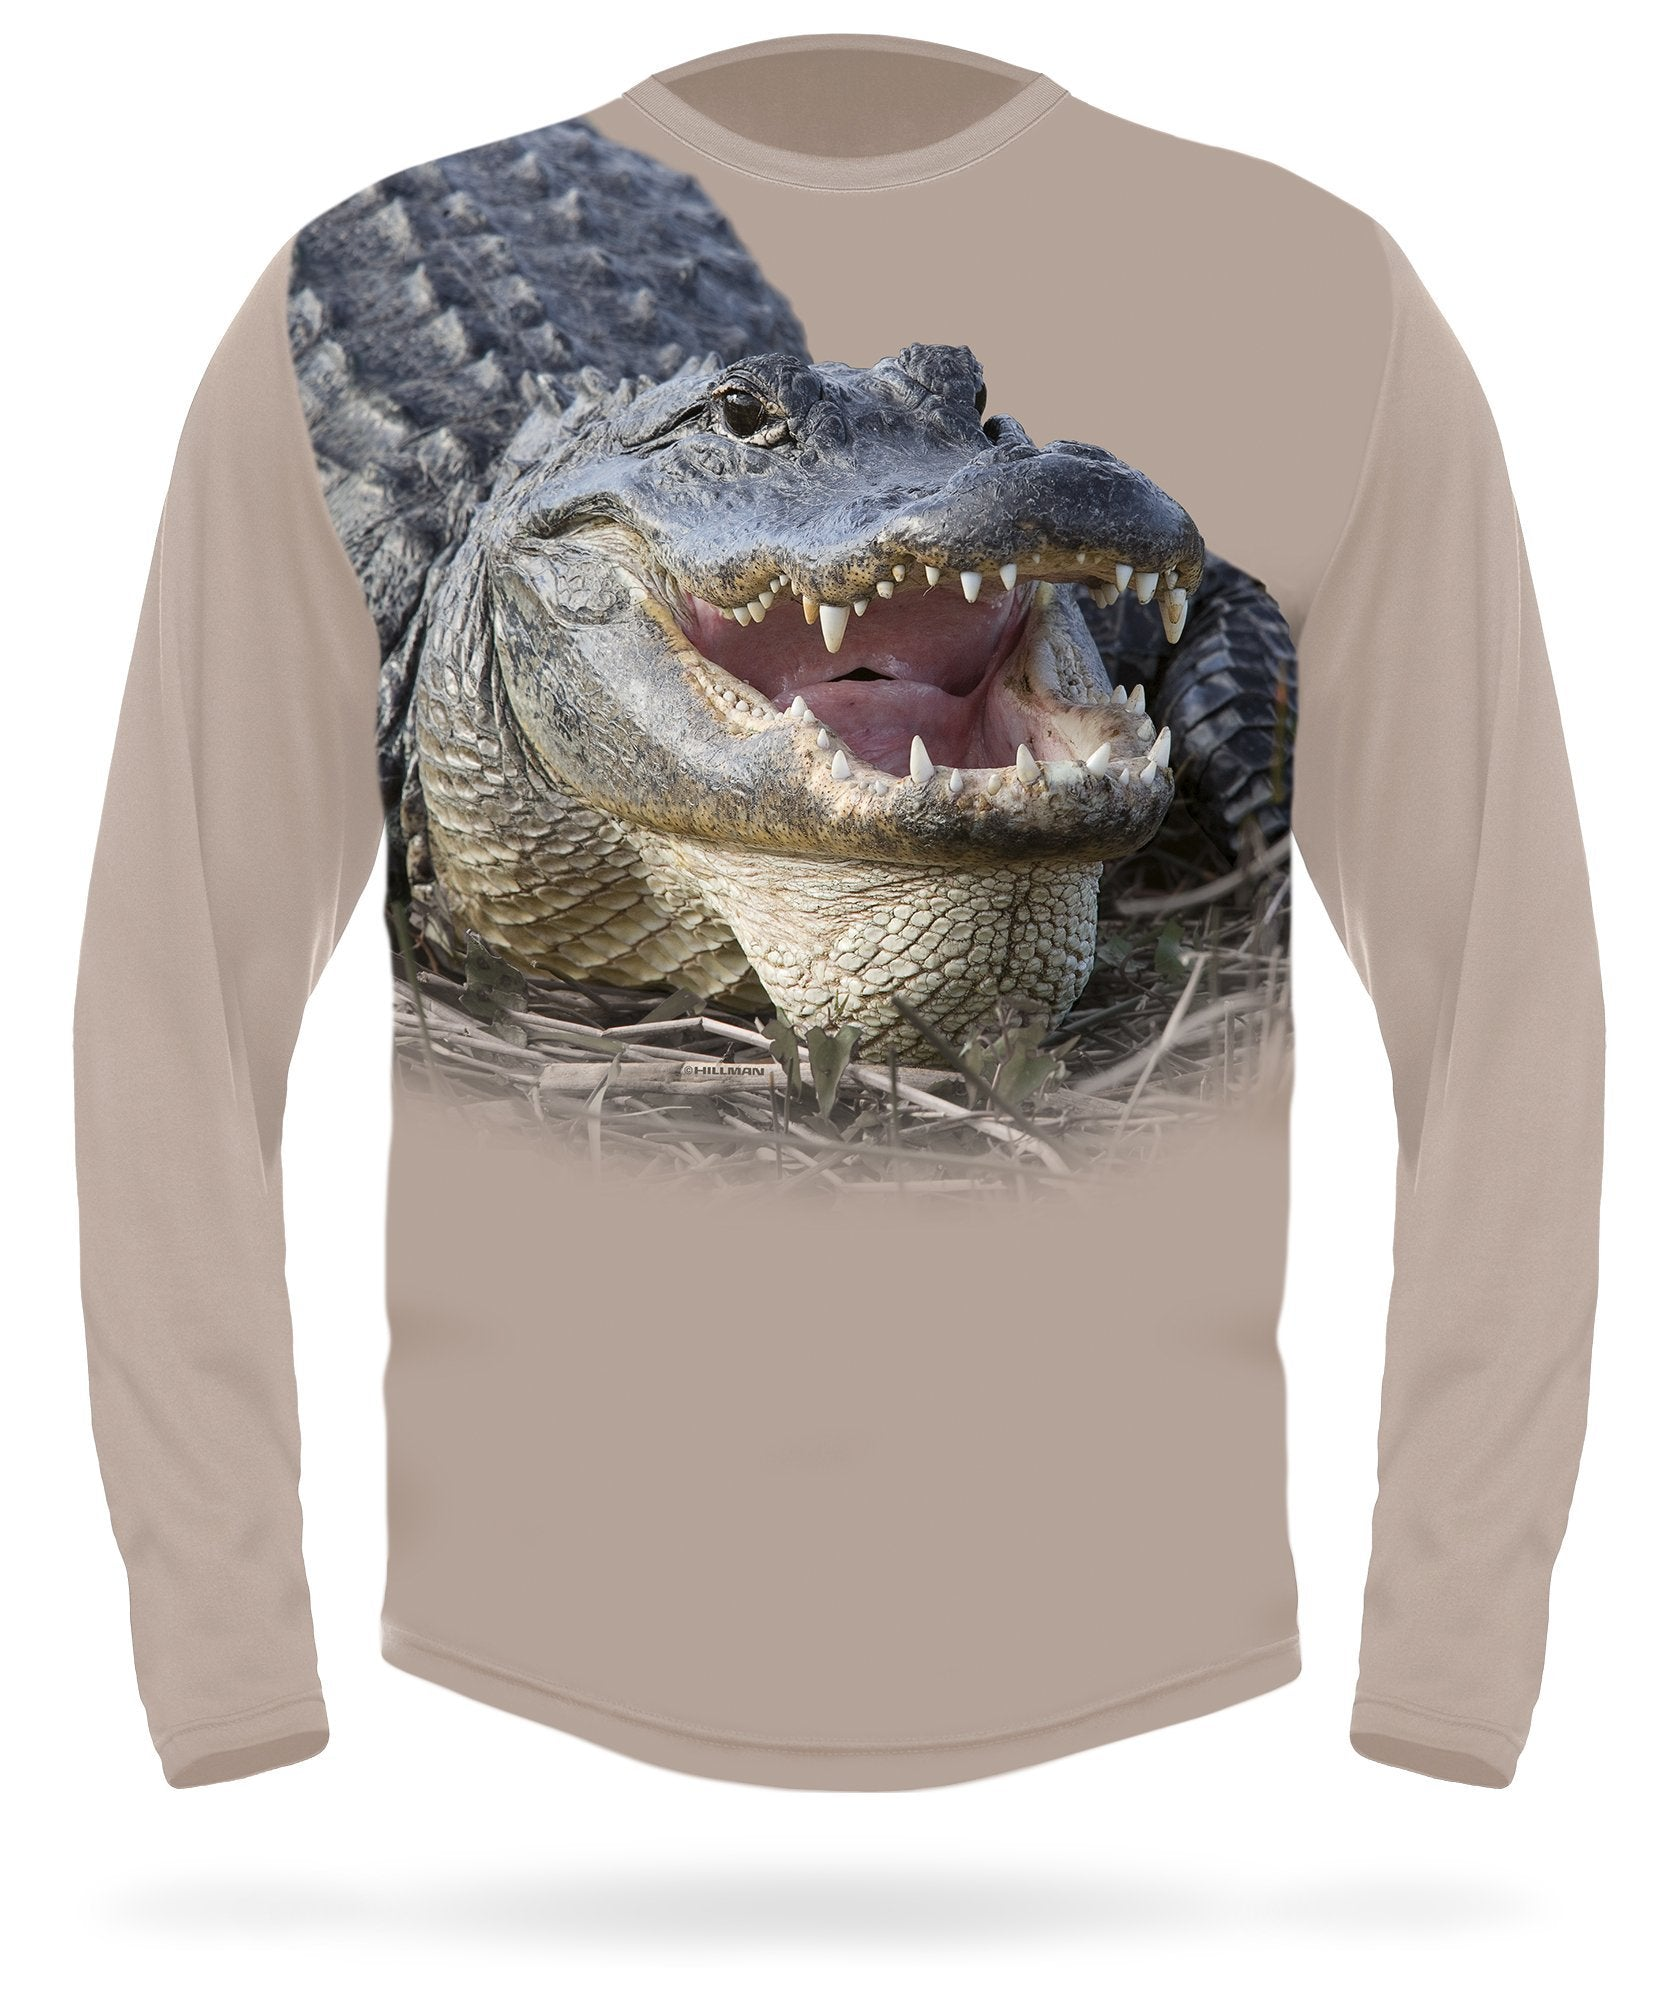 Alligator T-Shirt - Long Sleeve